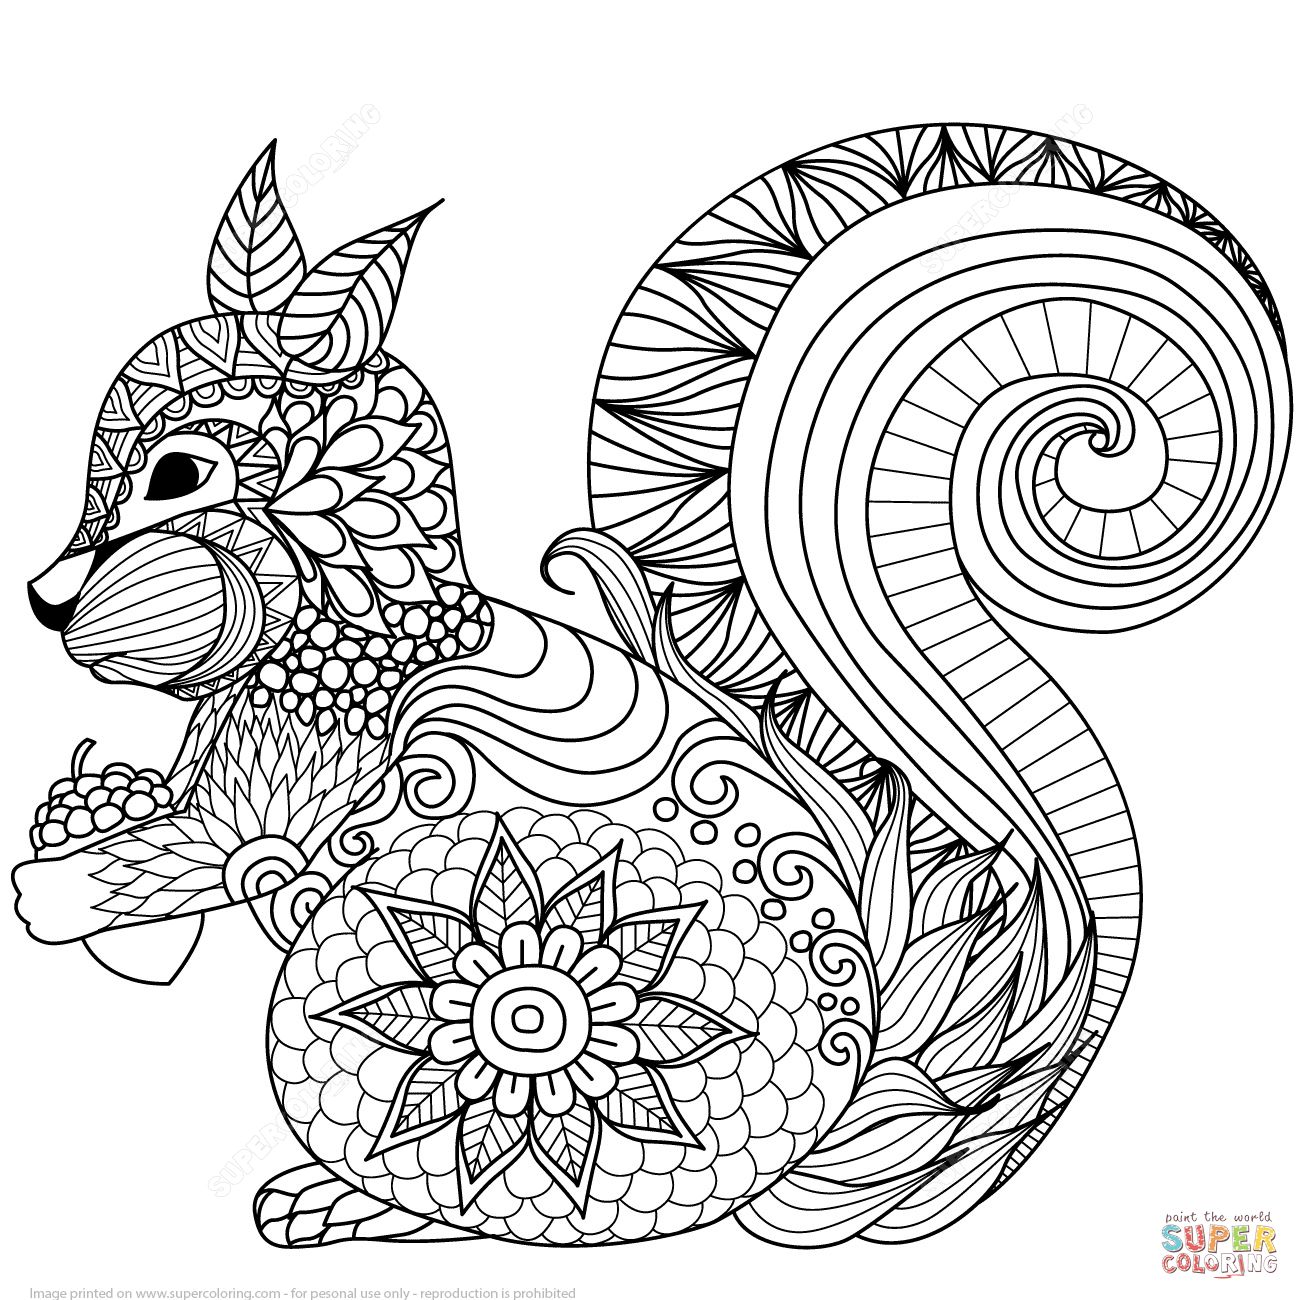 Lovely Squirrel Zentangle coloring page | Free Printable Coloring Pages |  Squirrel coloring page, Coloring books, Coloring pages